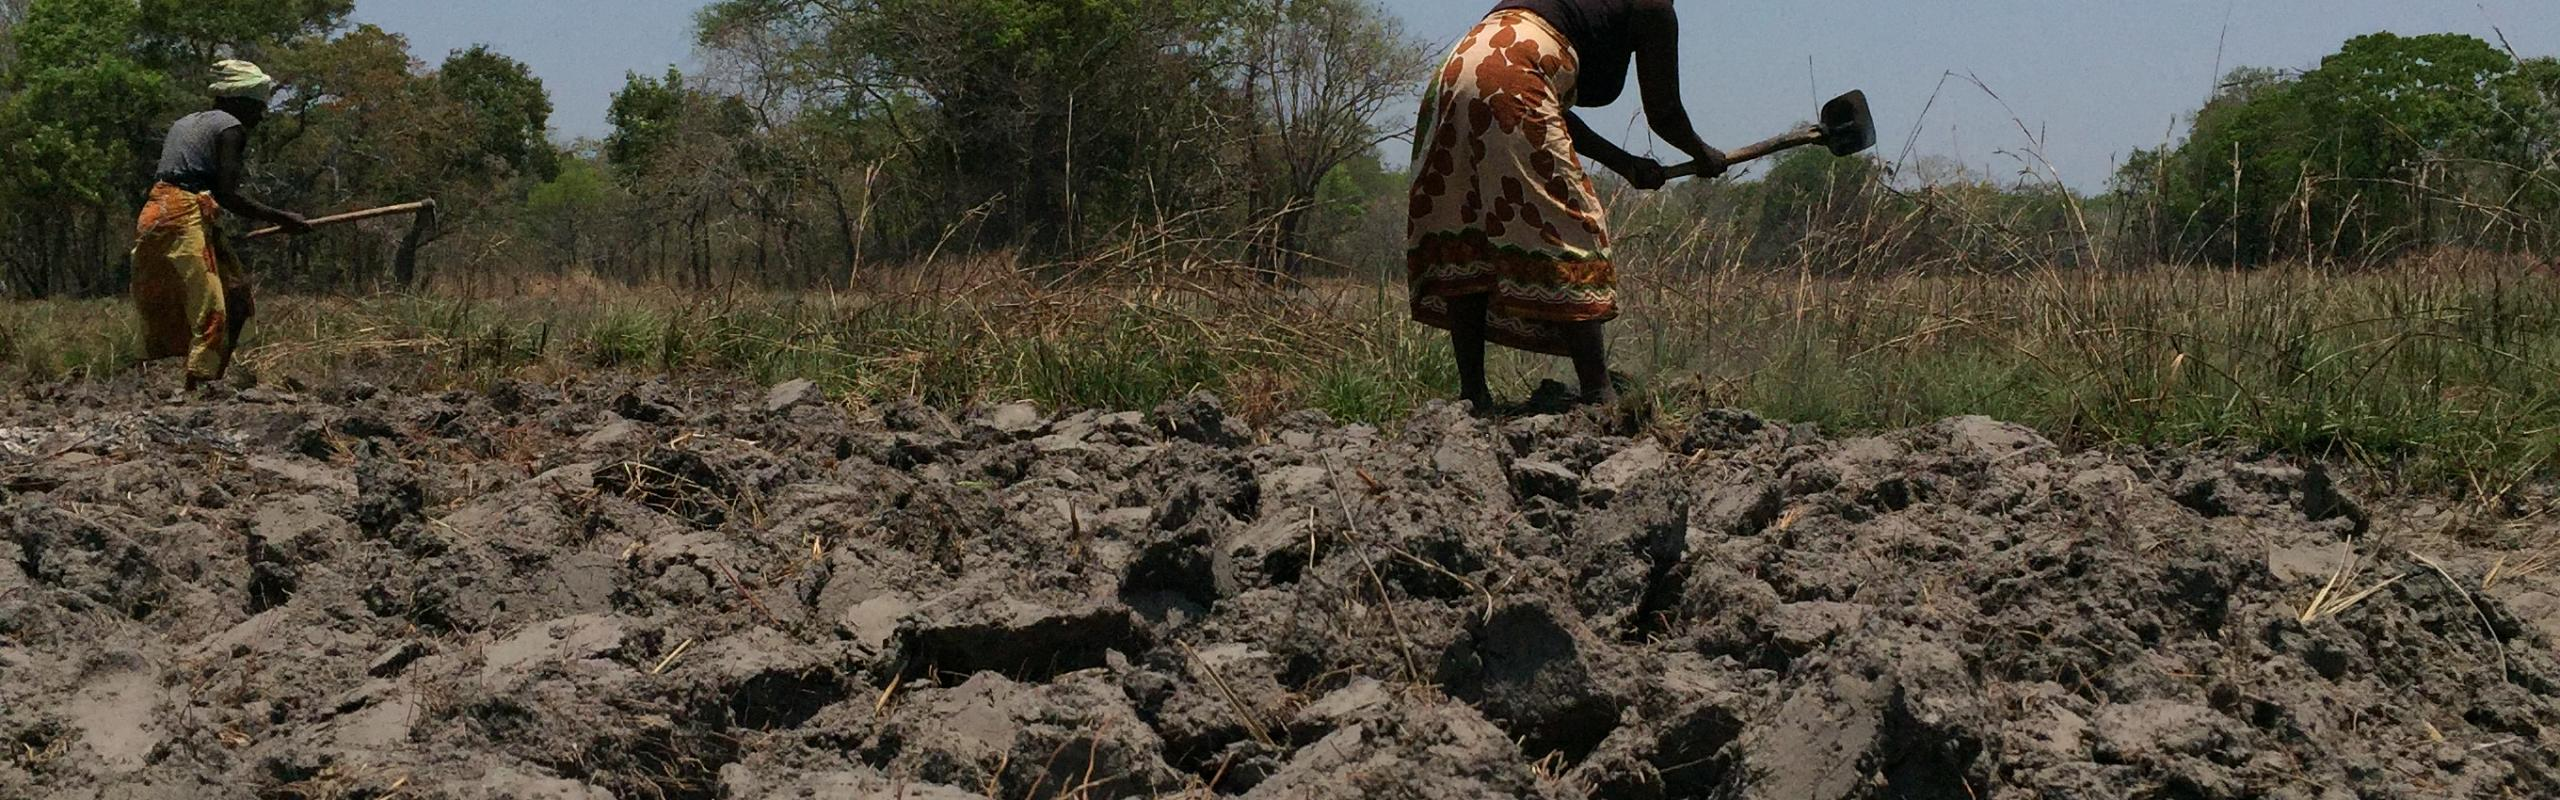 Drought in Mozambique